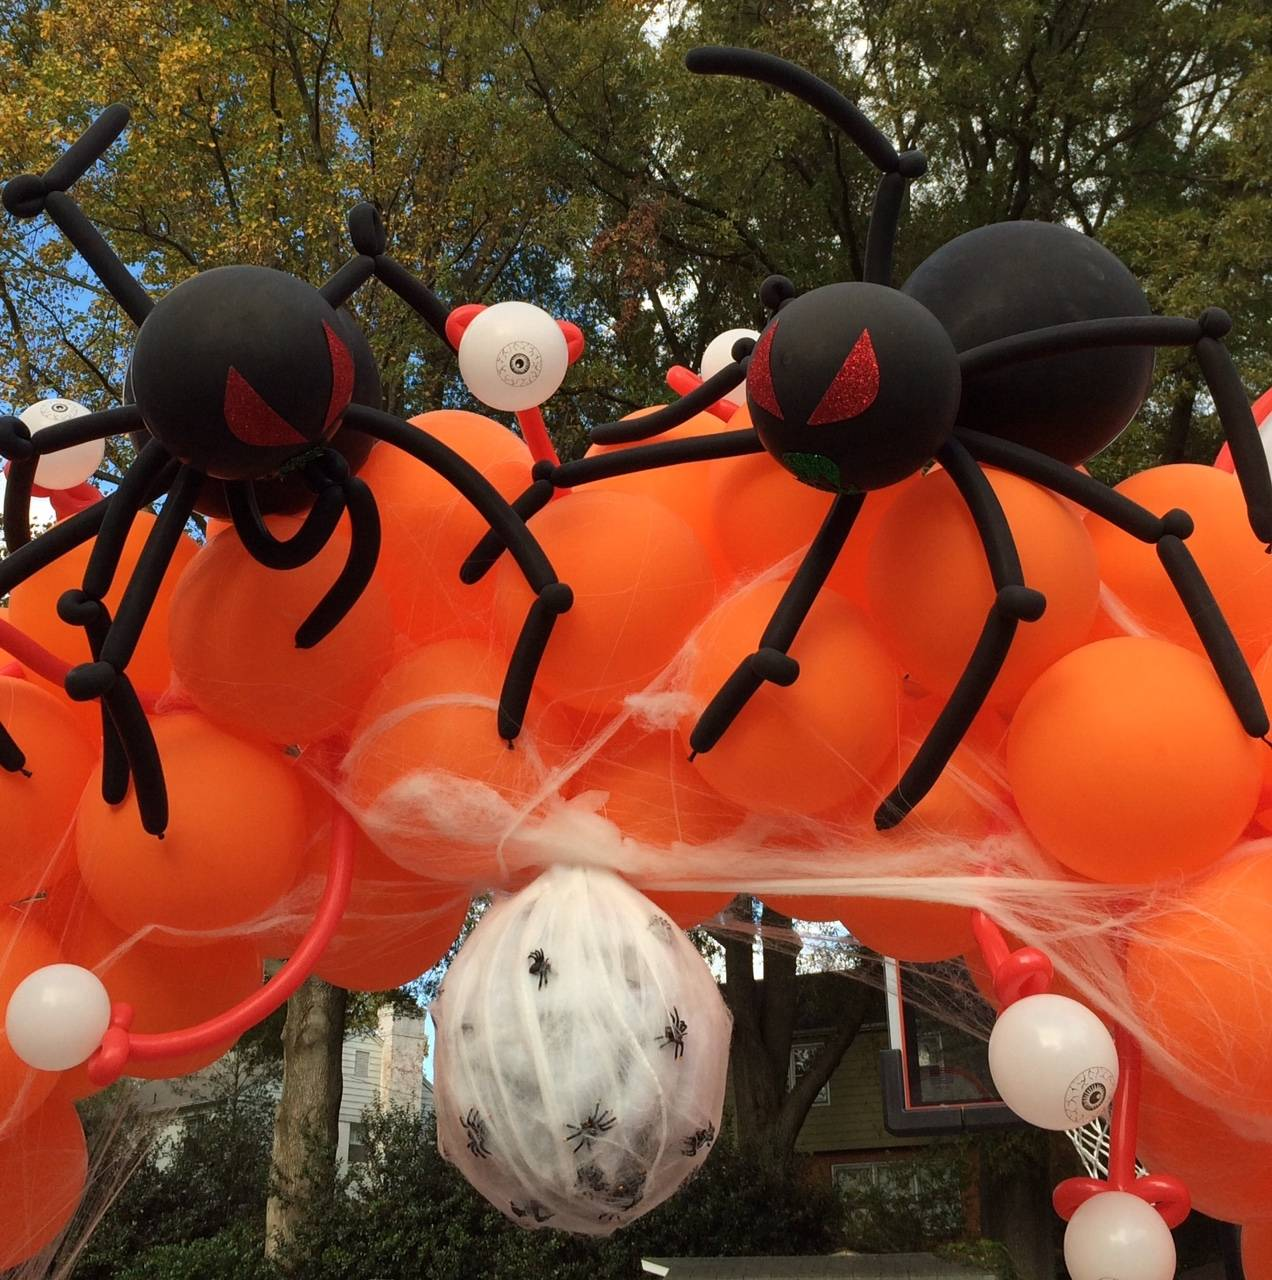 Large Balloon Spiders with Egg Sac